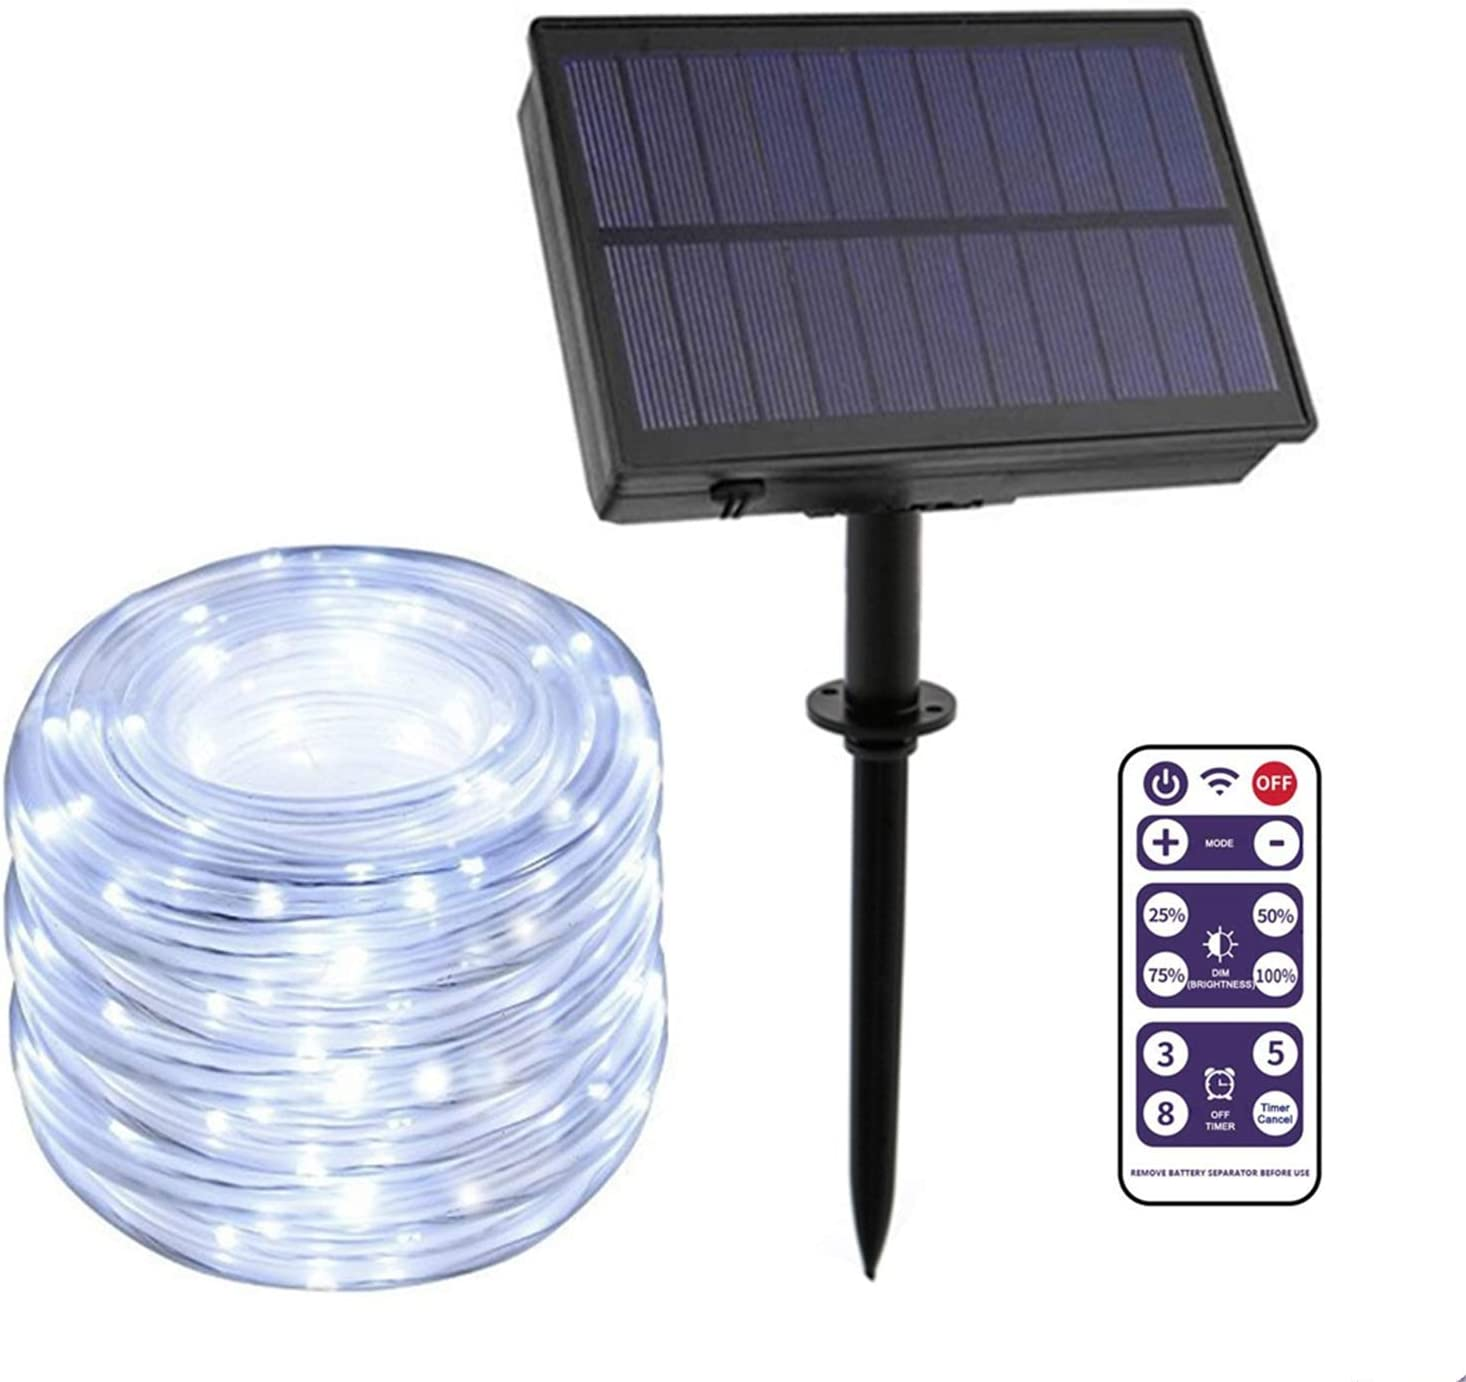 Free Amazon Promo Code 2020 for Outdoor String Lights Solar Powered with Remote